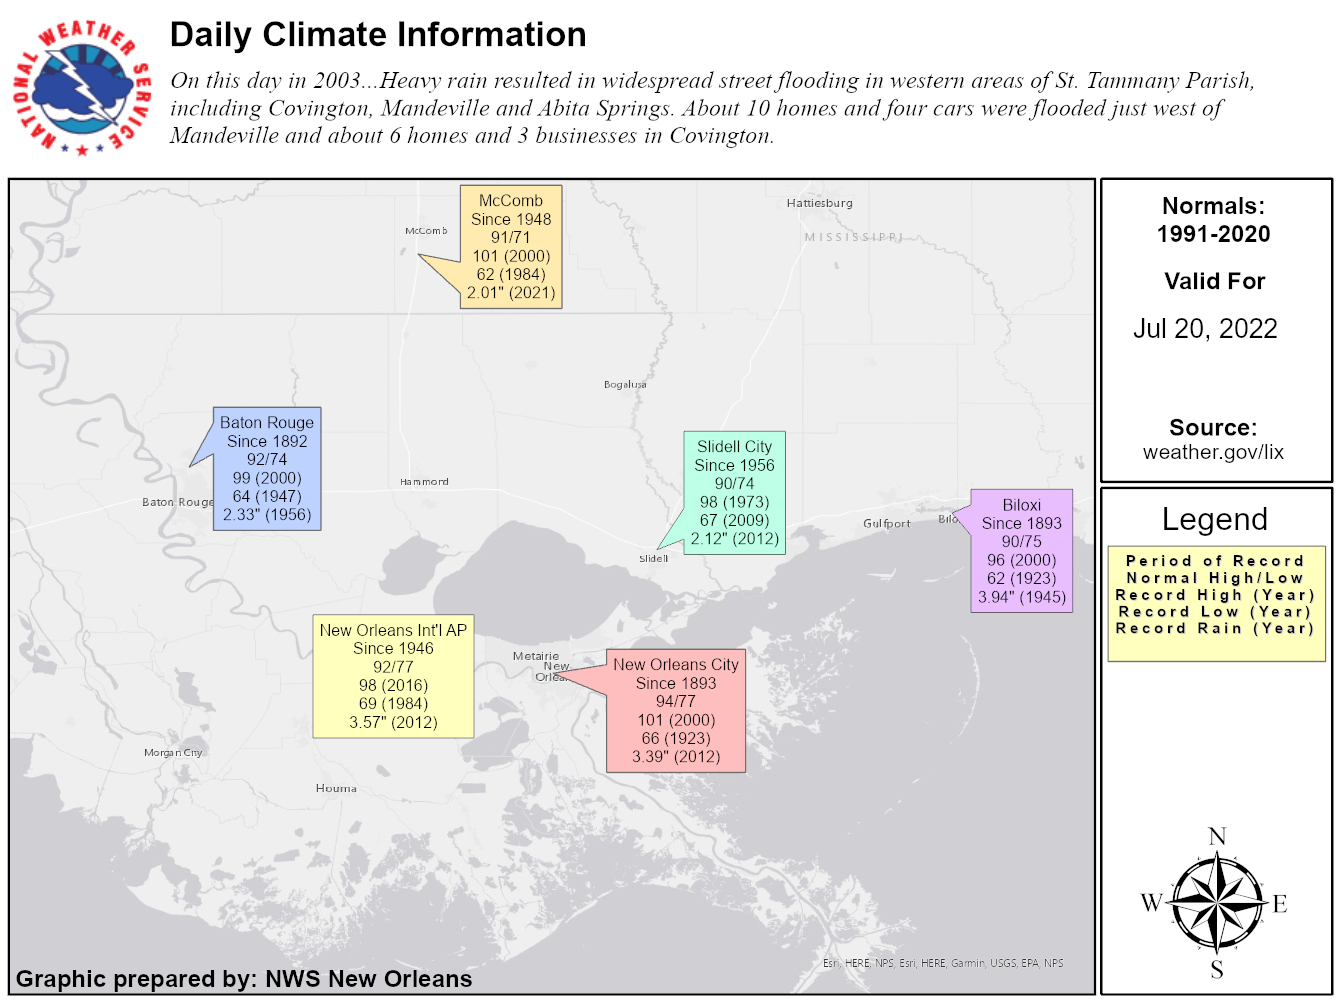 Image of Climate Data for Today